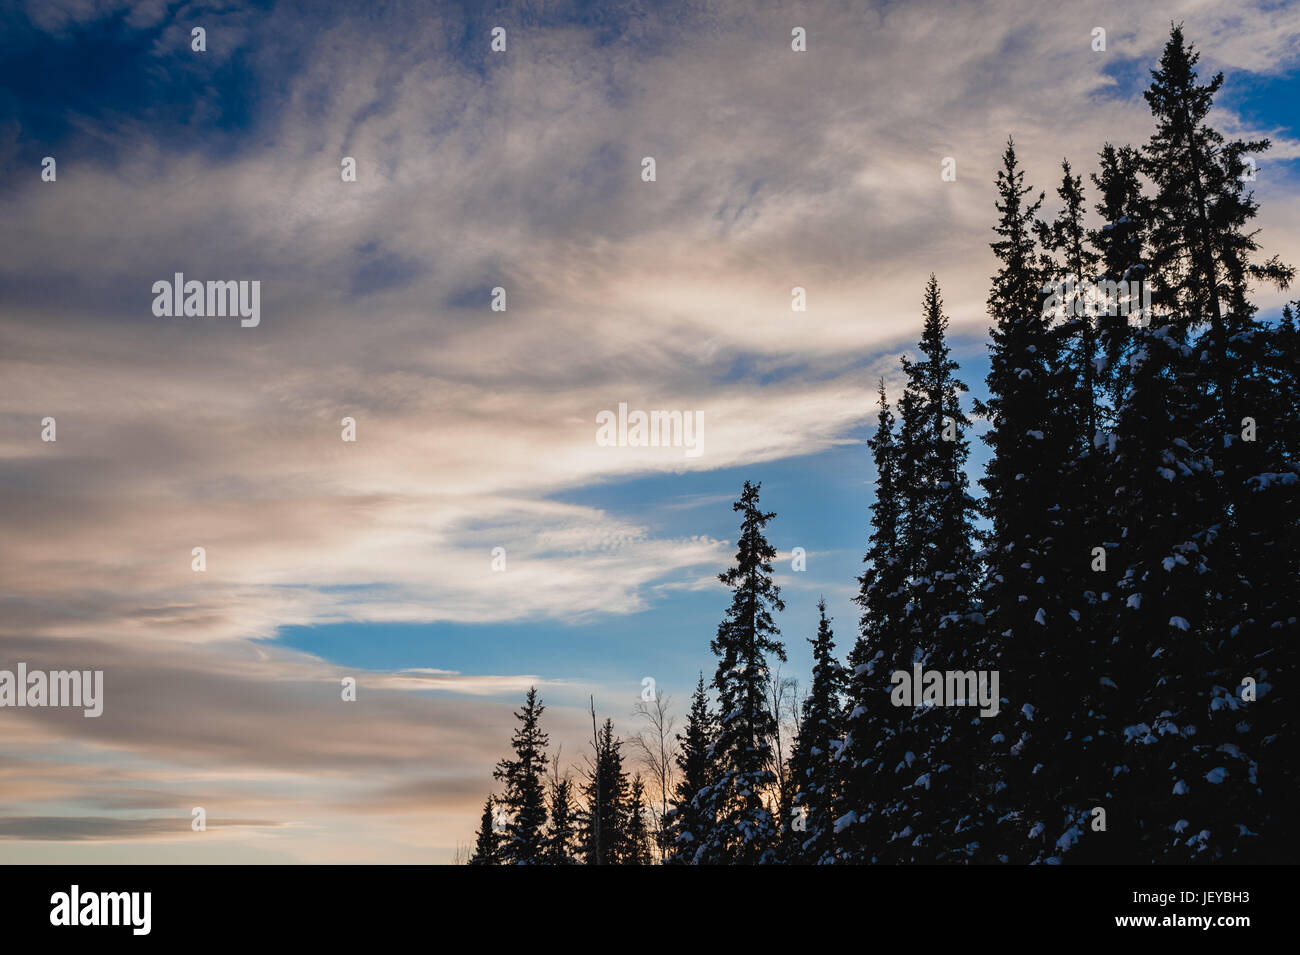 Snow covered trees with cloudy sky in Fairbanks, AK Stock Photo